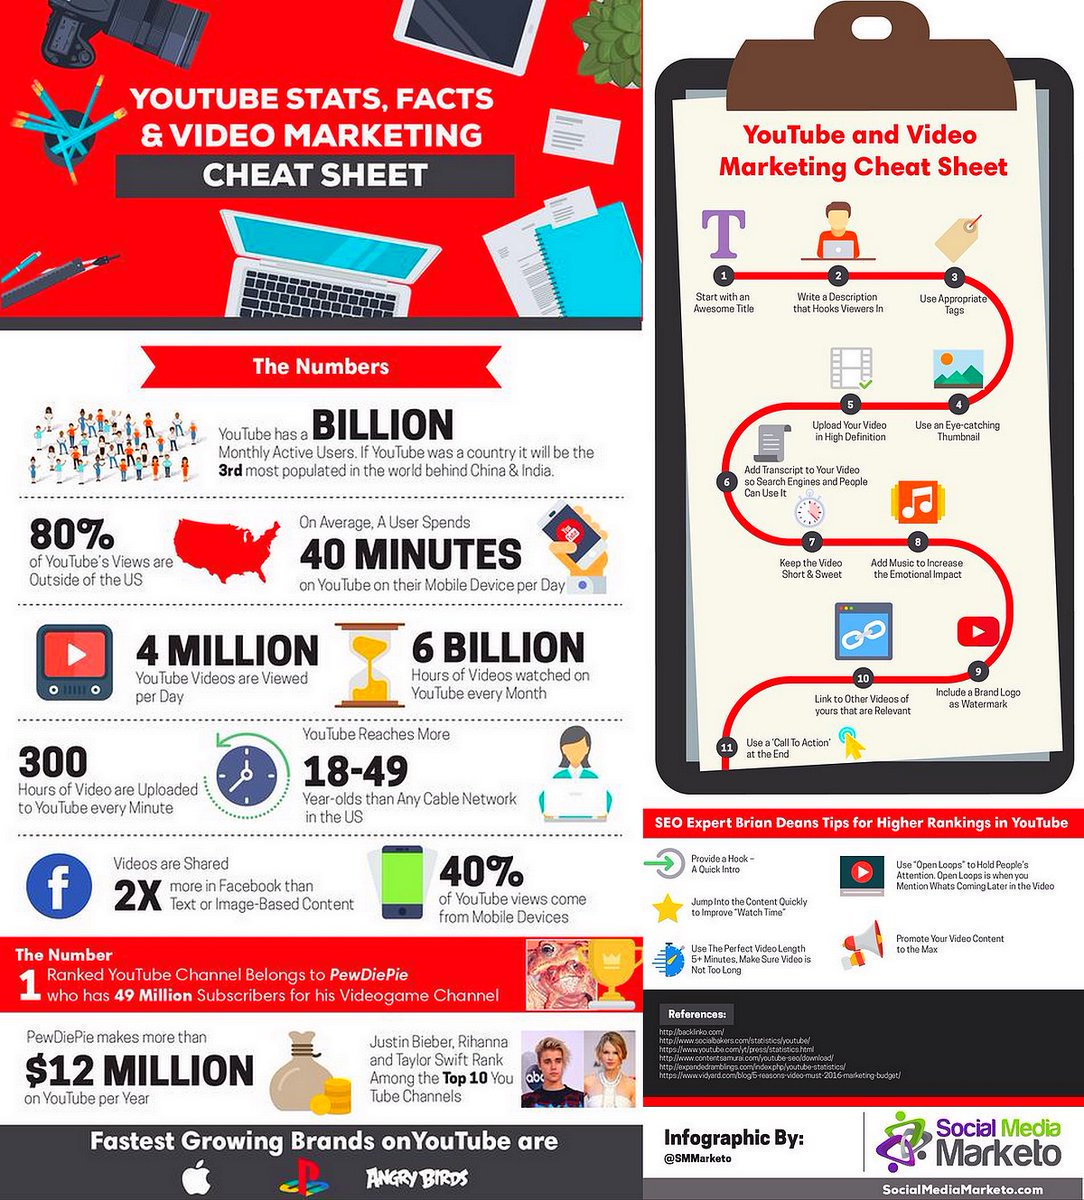 #Growth Hacking Your #Youtube Video #Marketing: The Youtube Cheat Sheet #VideoMarketing #GrowthHacking #ContentMarketing @SMMarketo<br>http://pic.twitter.com/4b94efMsSc